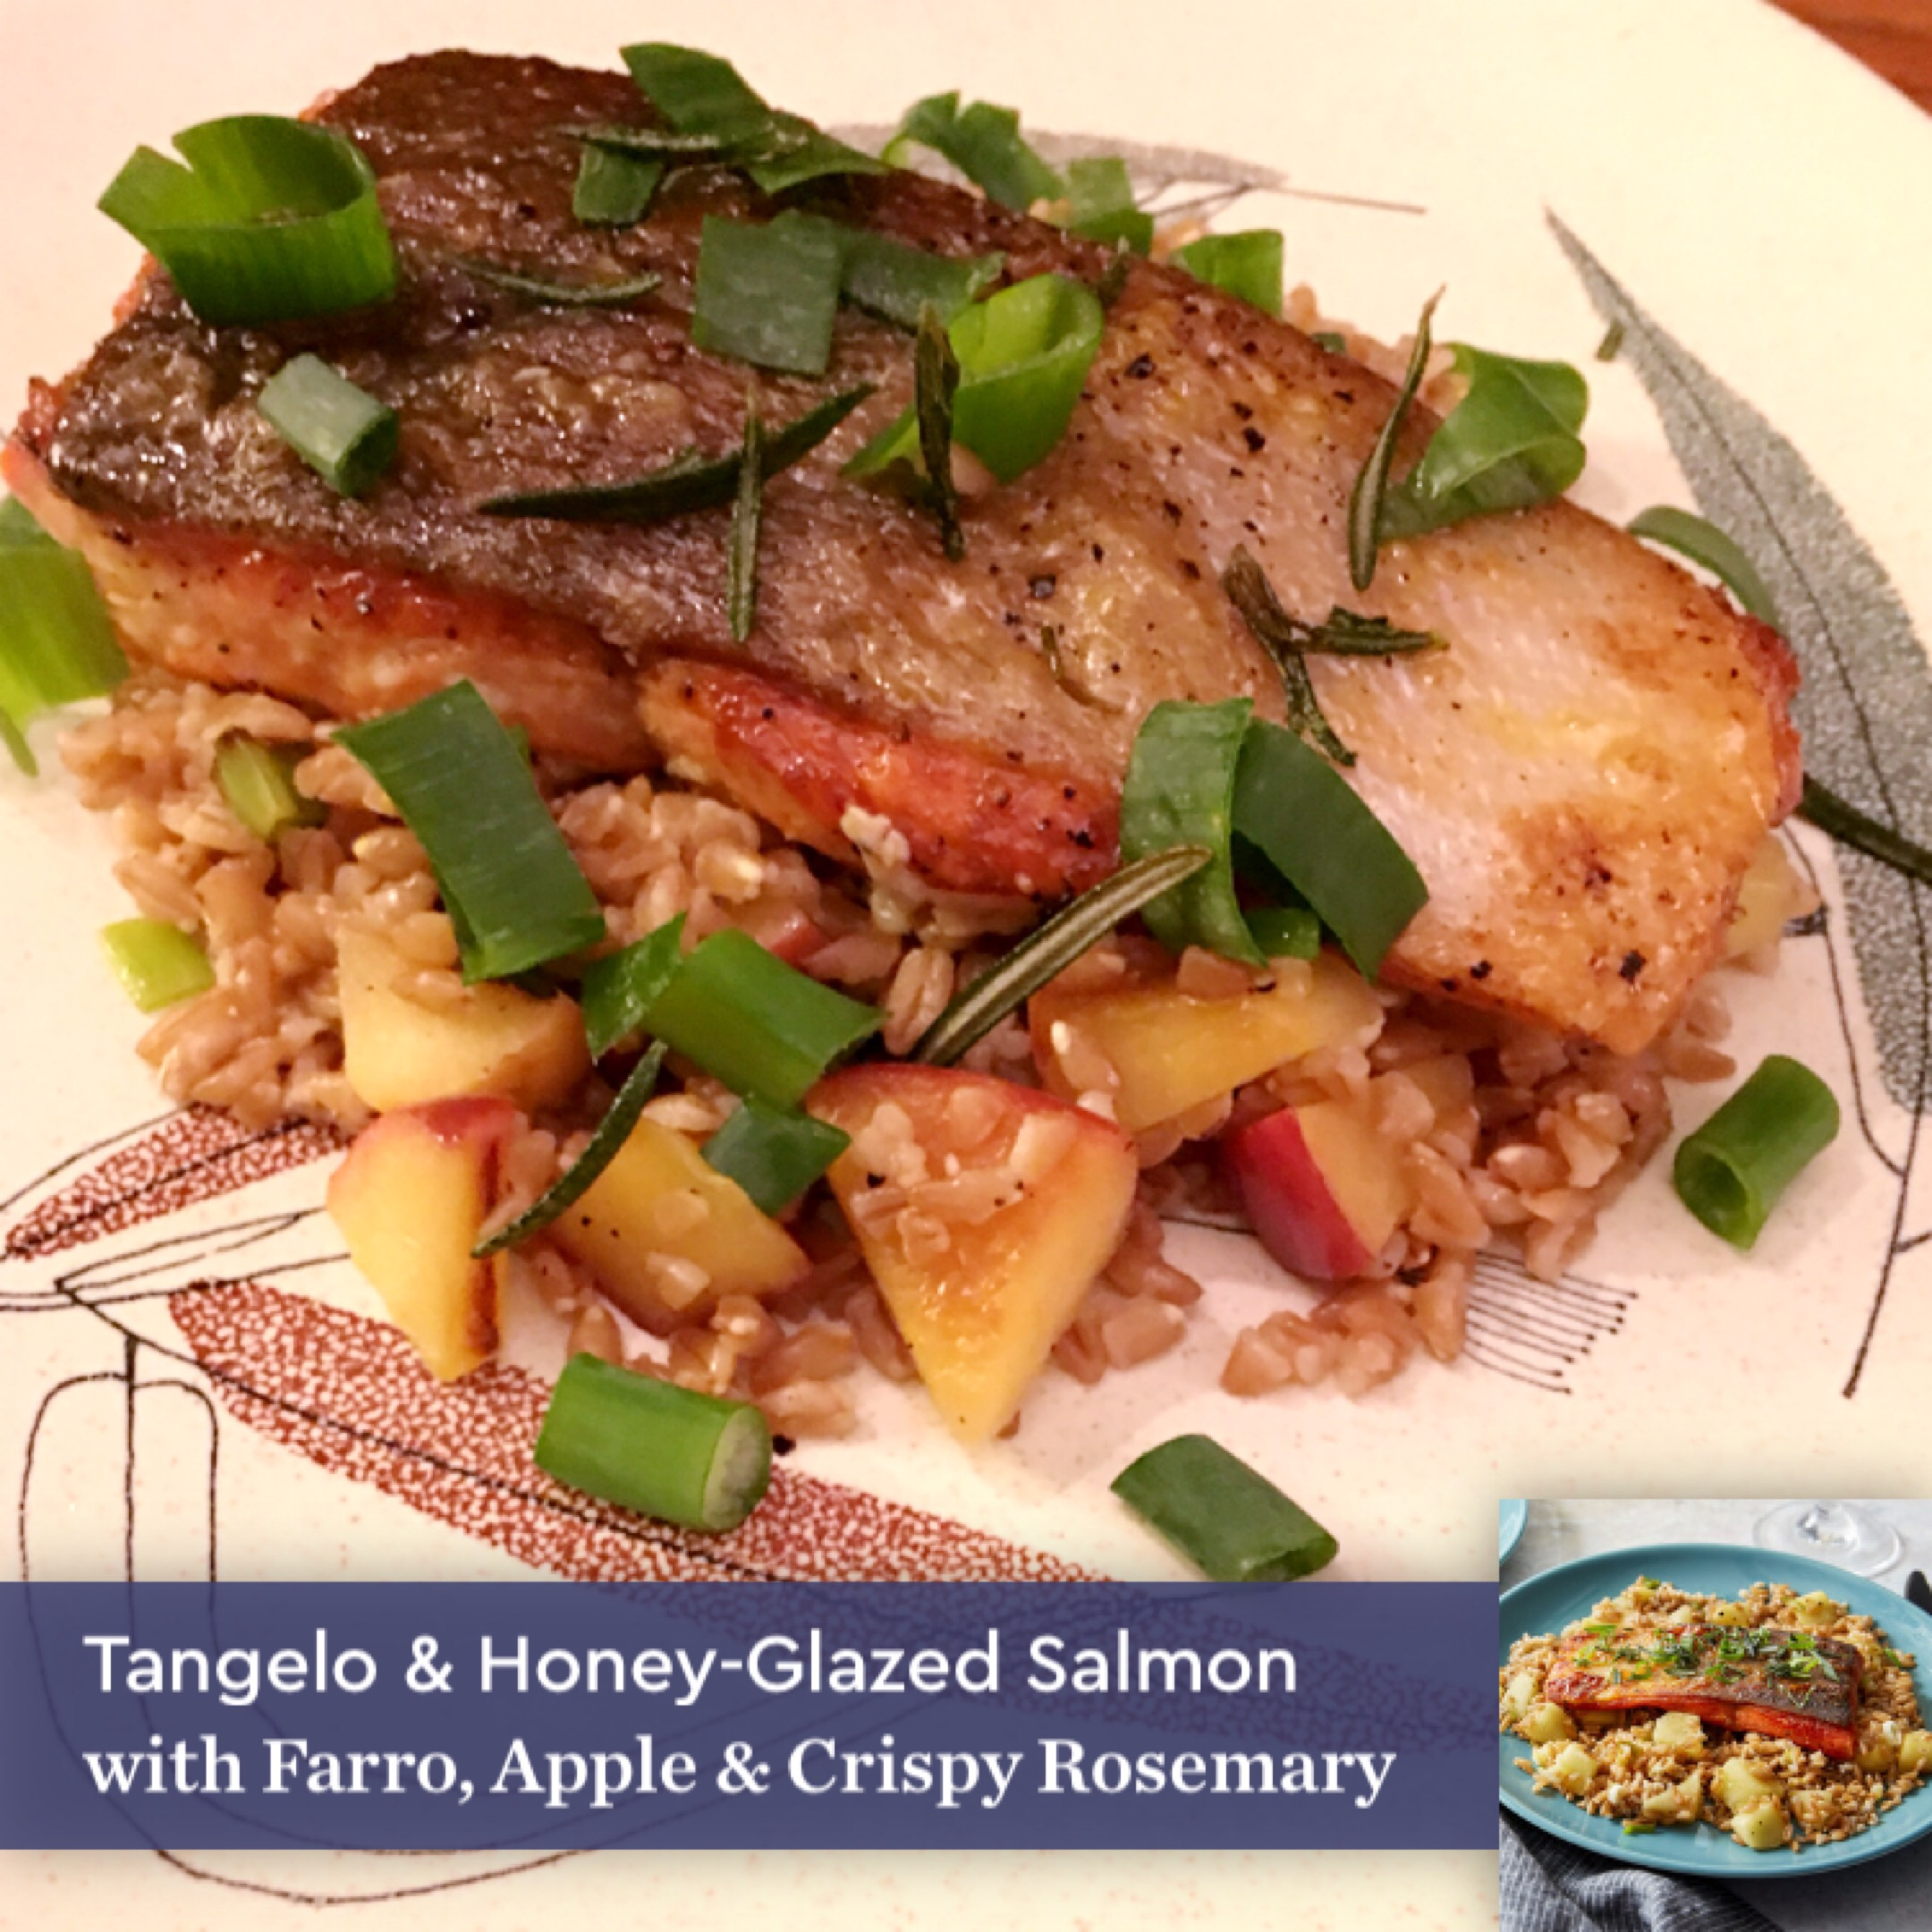 Blue apron salmon - Take A Look At The Pictures From My First Box Below I Used The Handy Blue Apron App For Filters And The Recipe Captions